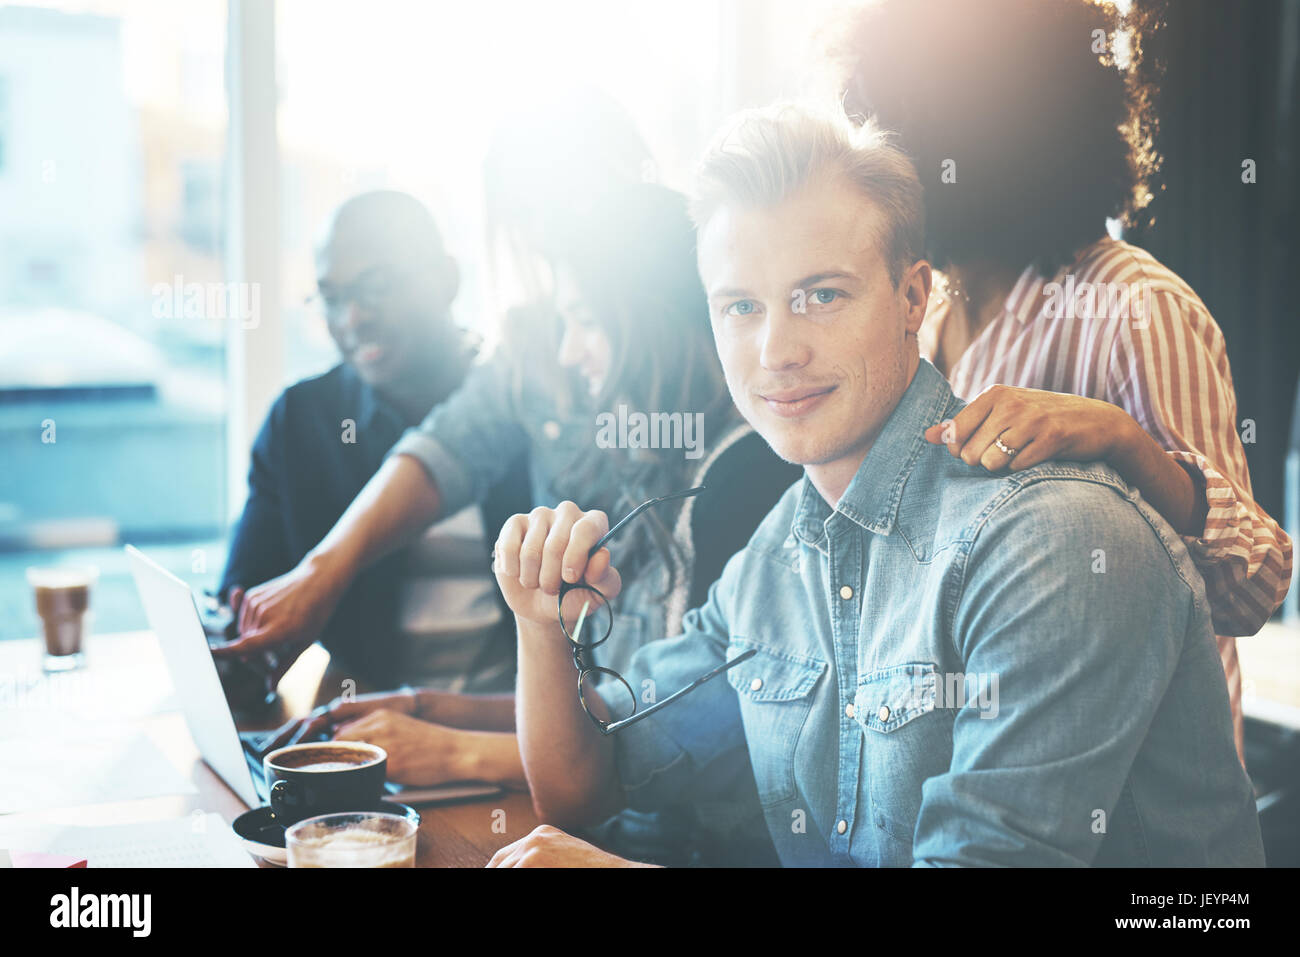 Handsome man holding eyeglasses while seated at conference table with coworkers. Bright windows in background. - Stock Image